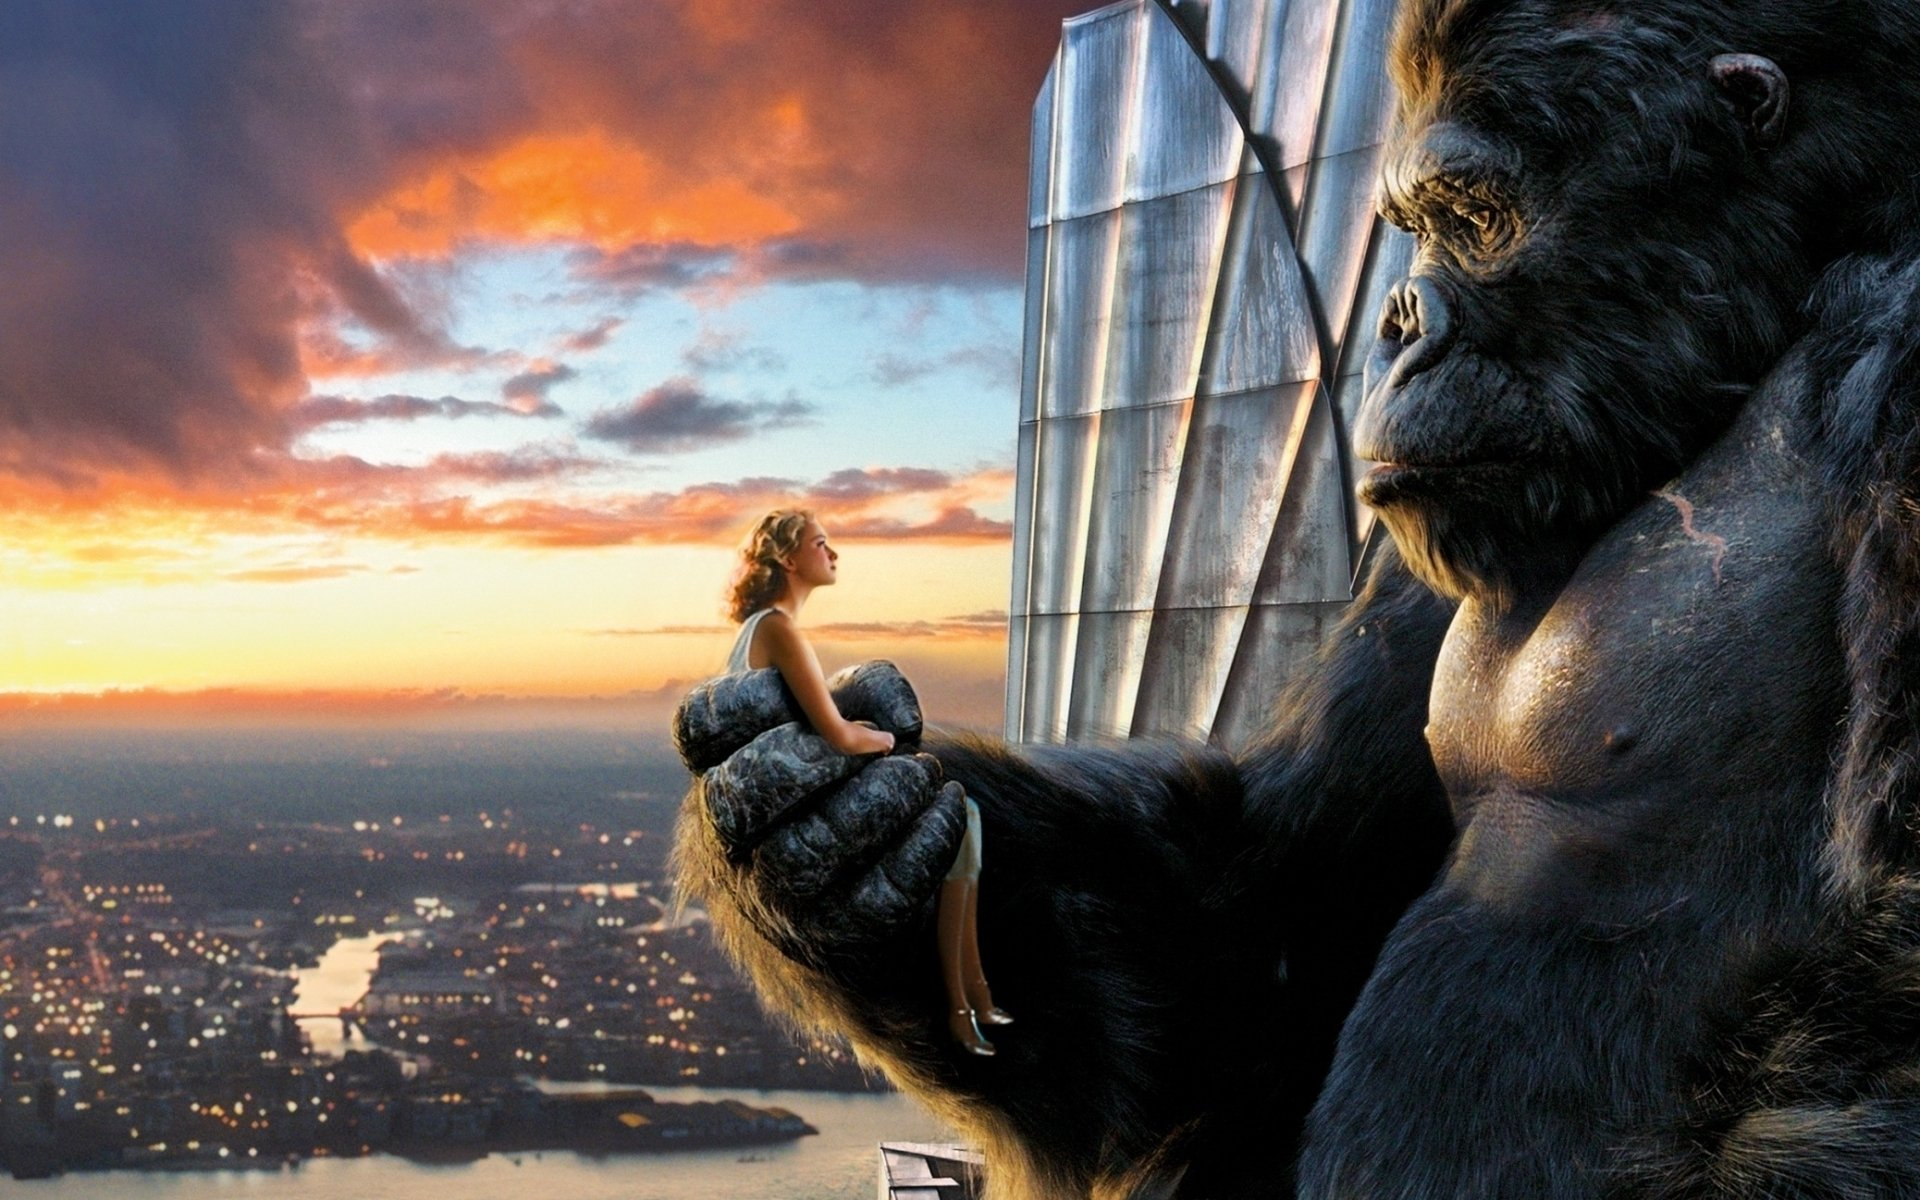 King kong 2005 full hd wallpaper and background image - King kong 2005 hd wallpapers ...